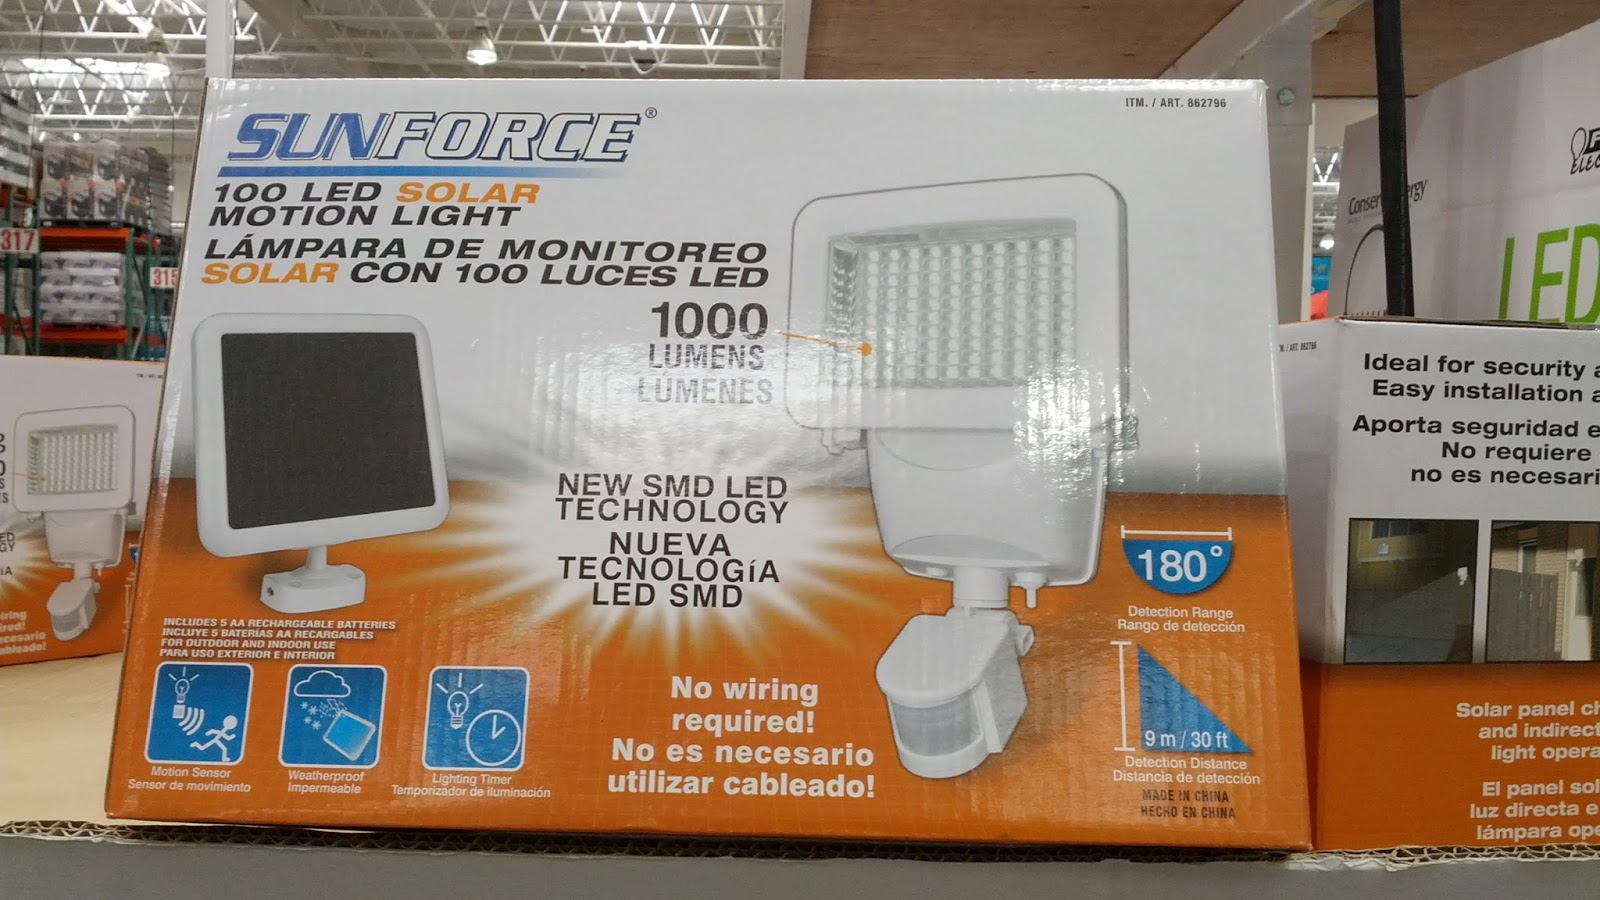 Sunforce 100 Led Solar Motion Security Light Costco